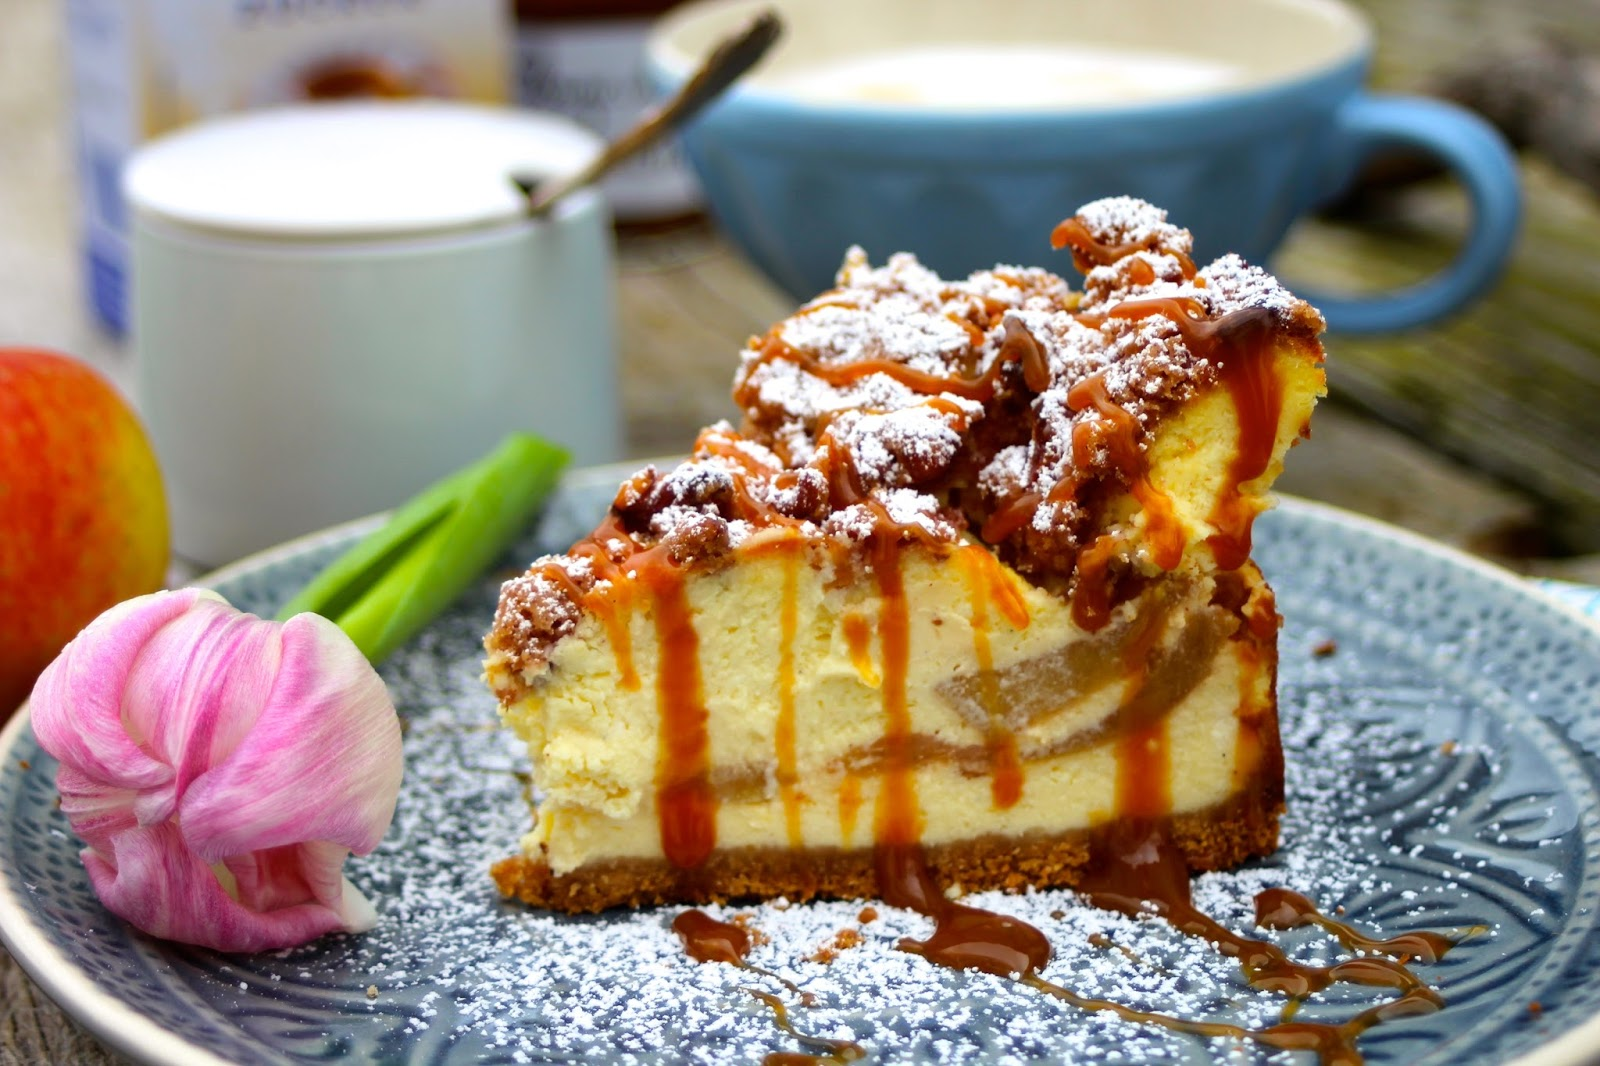 paulas frauchen dutch apple caramel streusel cheesecake